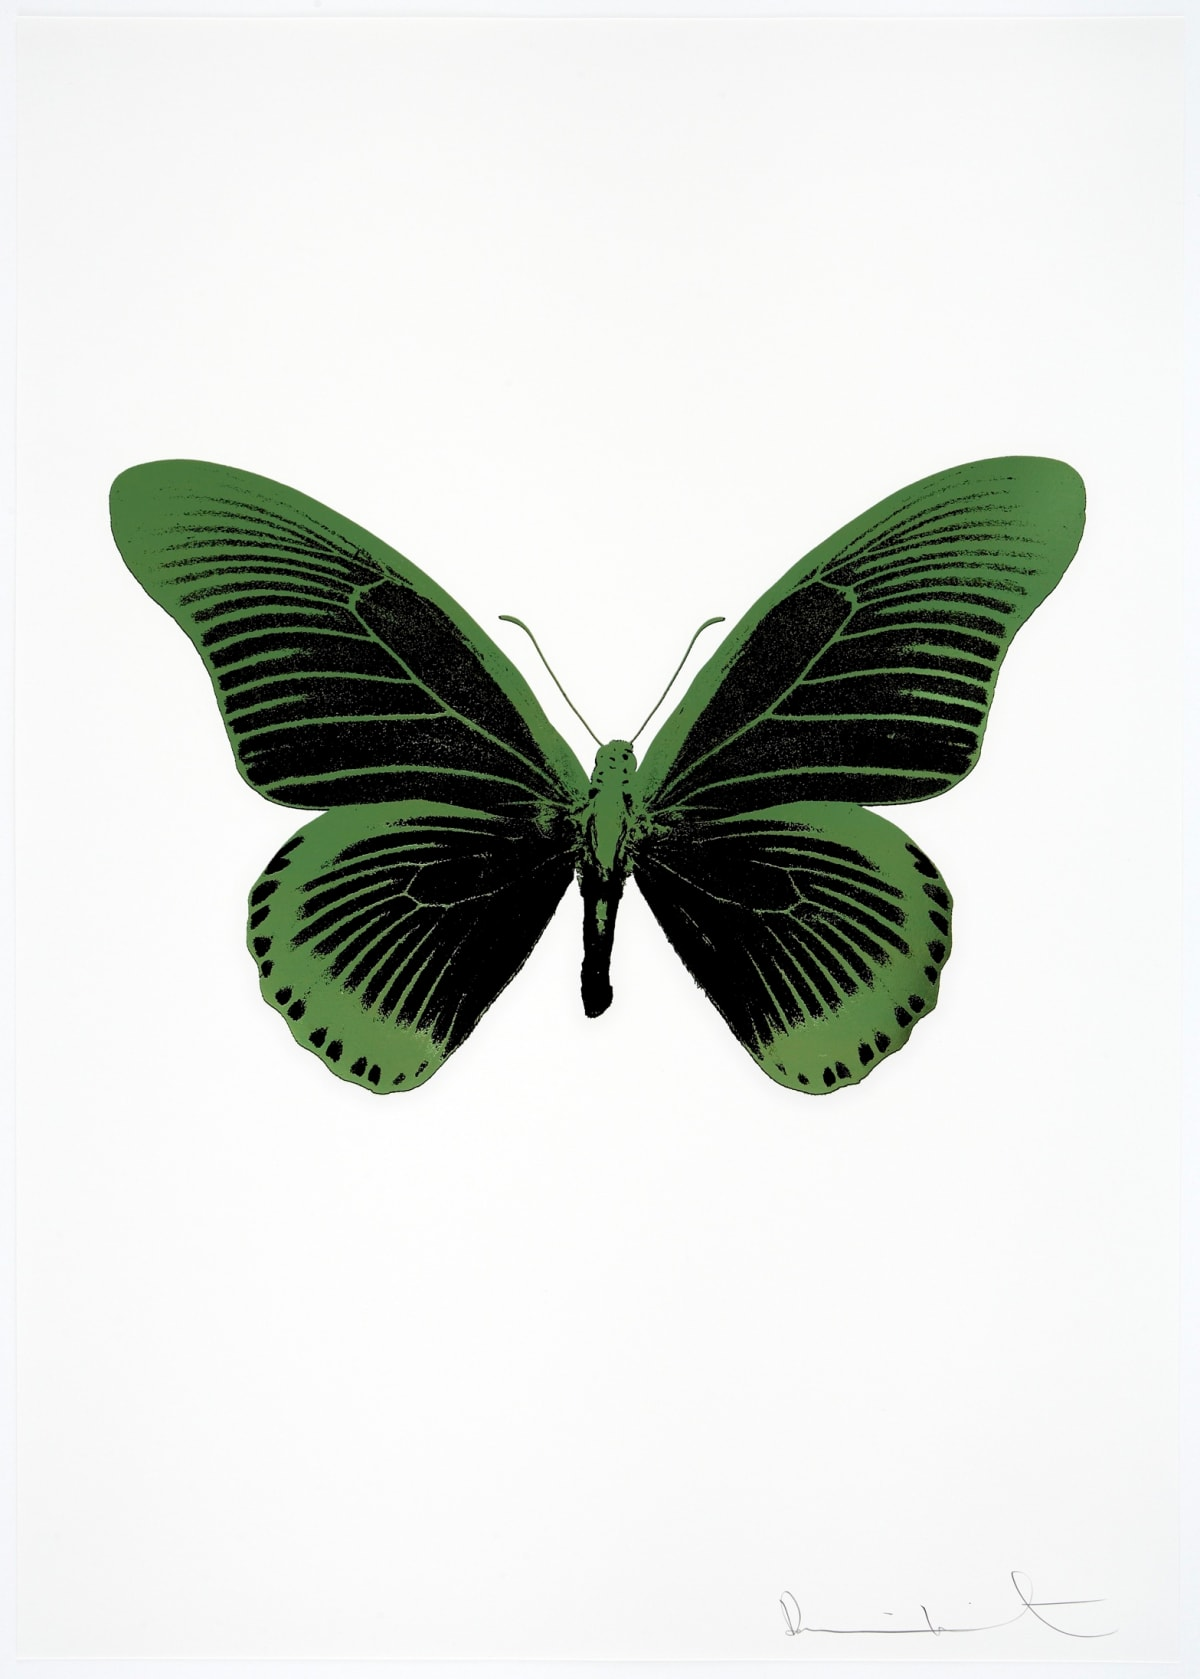 Damien Hirst The Souls IV - Raven Black/Leaf Green Damien Hirst butterfly foil print for sale Damien Hirst print for sale , 2010 2 colour foil block on 300gsm Arches 88 archival paper. Signed and numbered. Published by Paul Stolper and Other Criteria 72 x 51cm OC8053 / 1418-76 Edition of 15